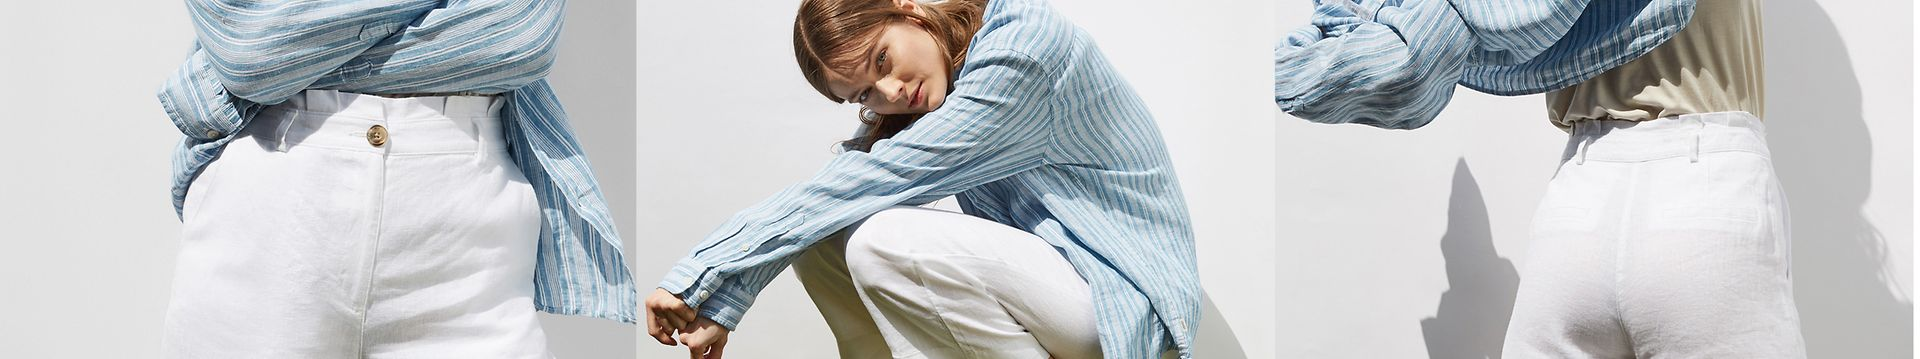 182021 - women - tc banner - pants - IMG